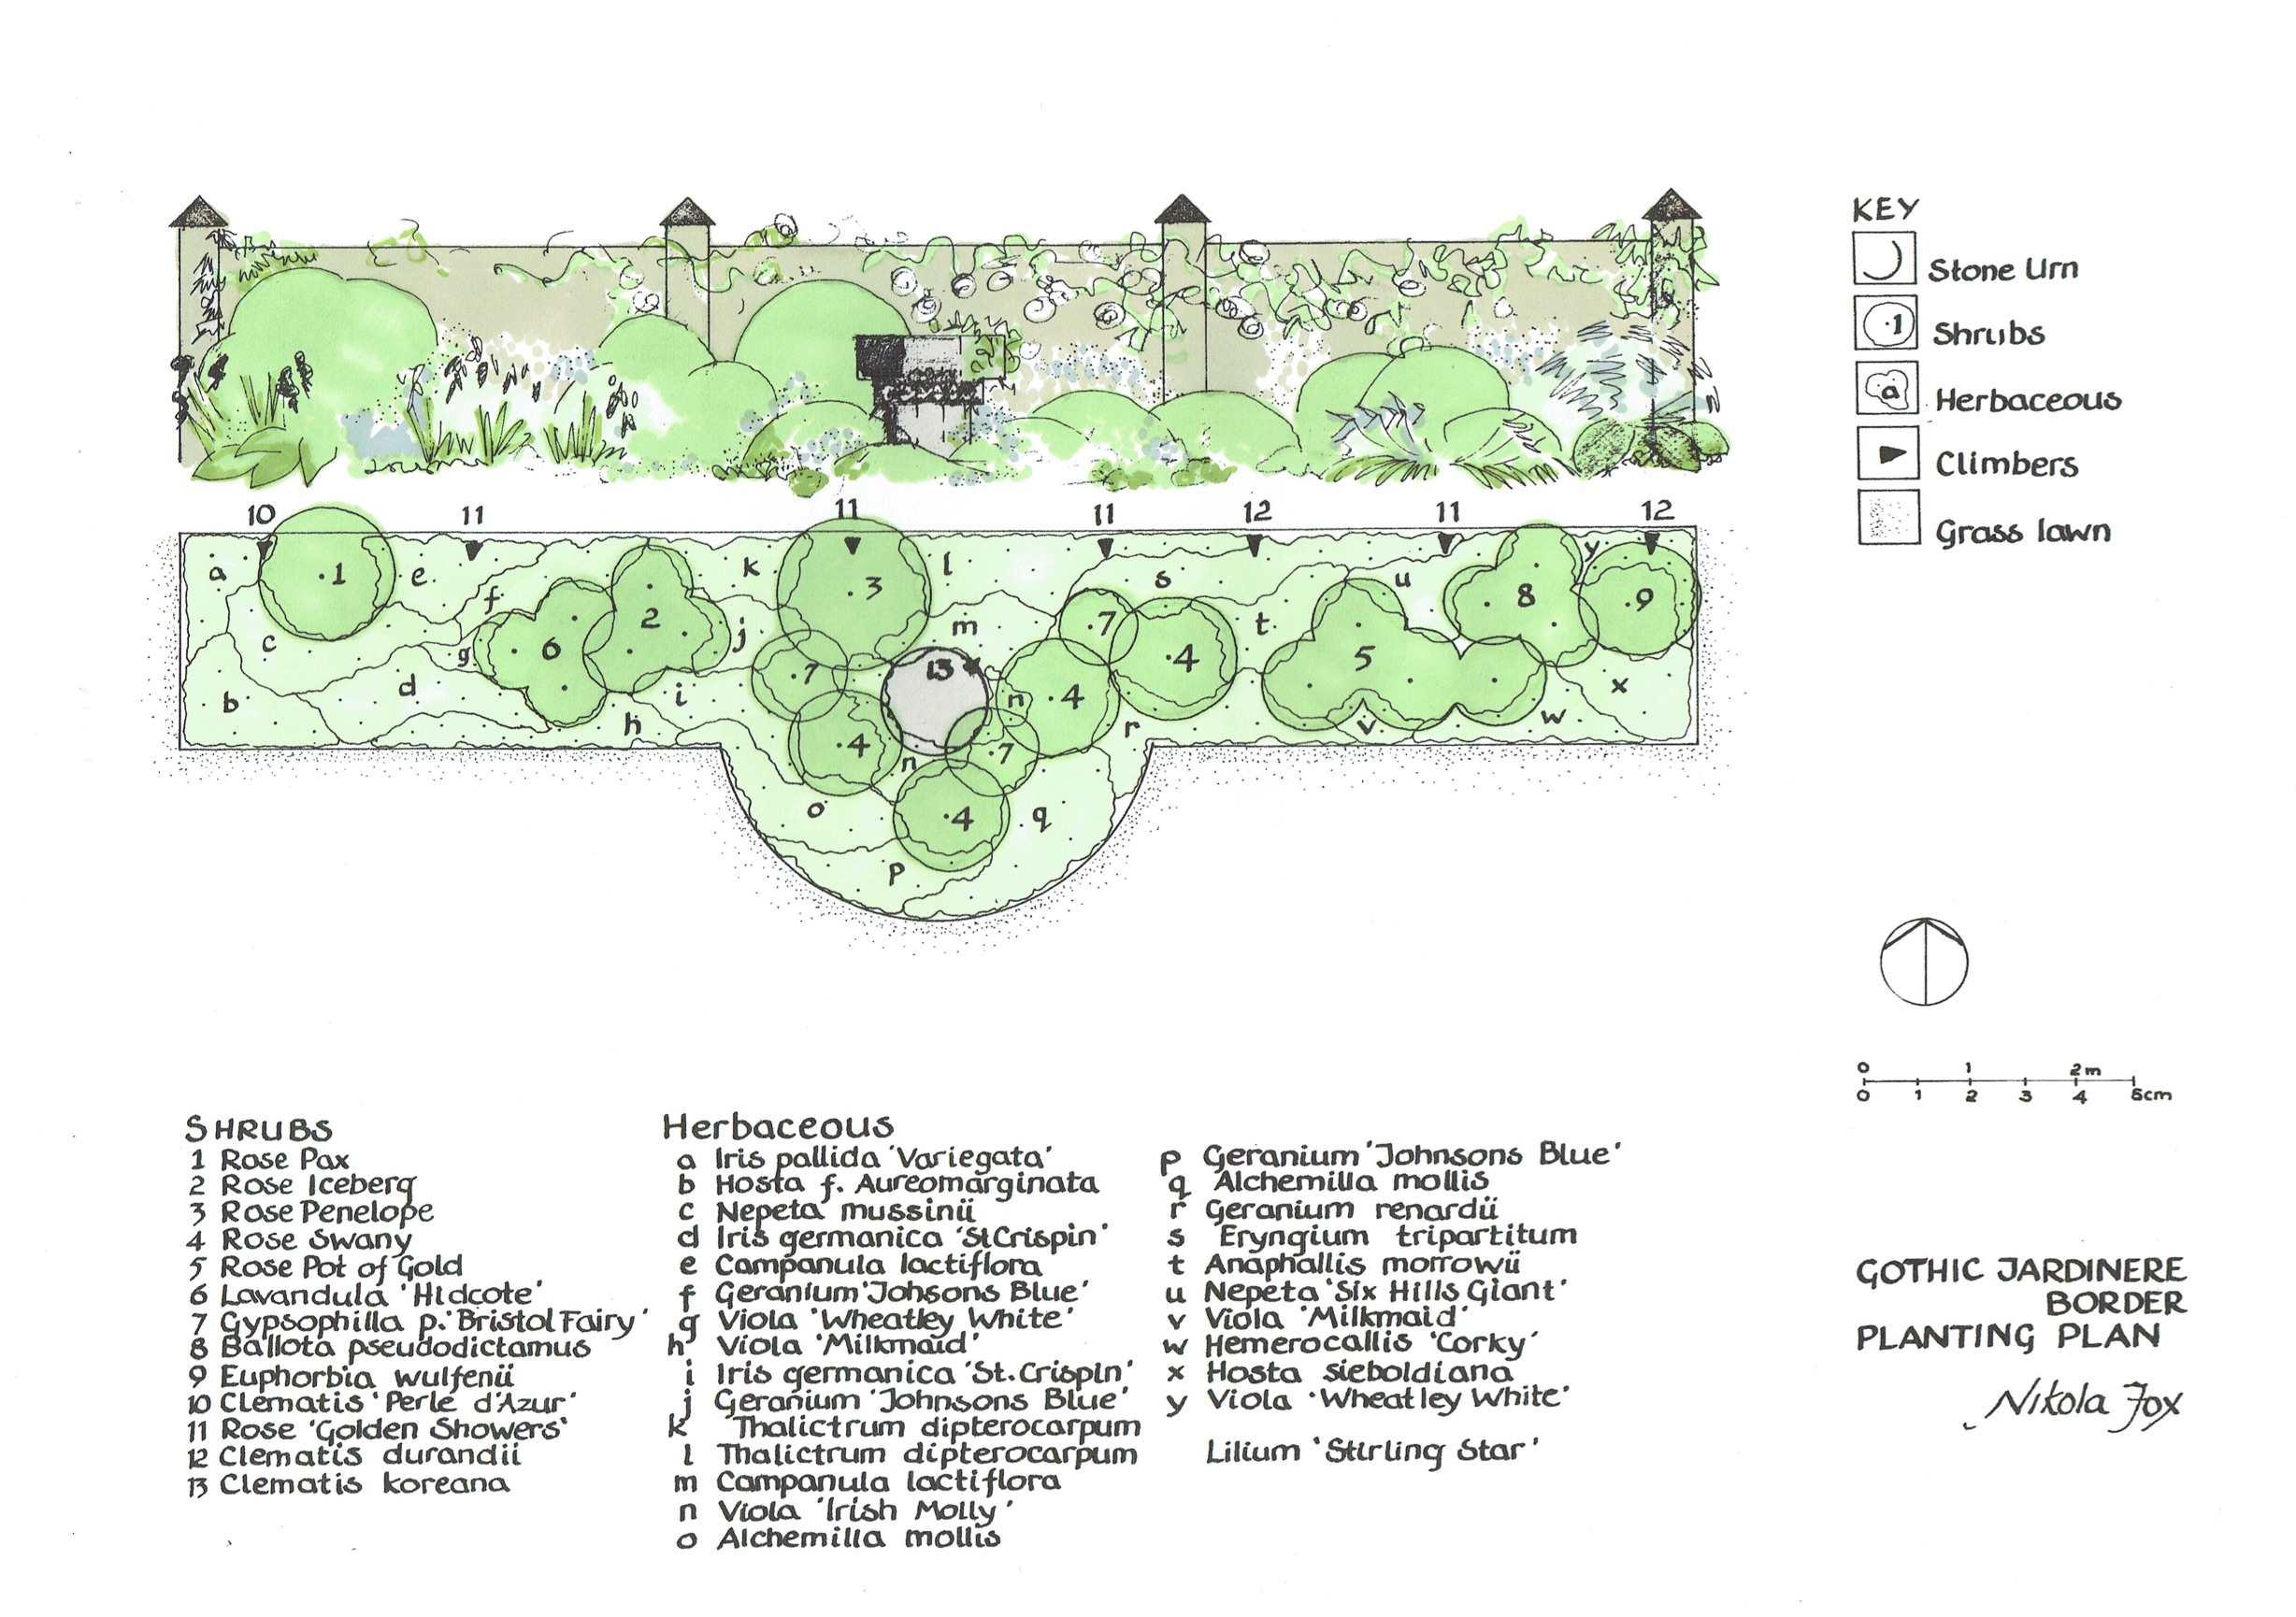 Garden Designs - Fox Garden Design